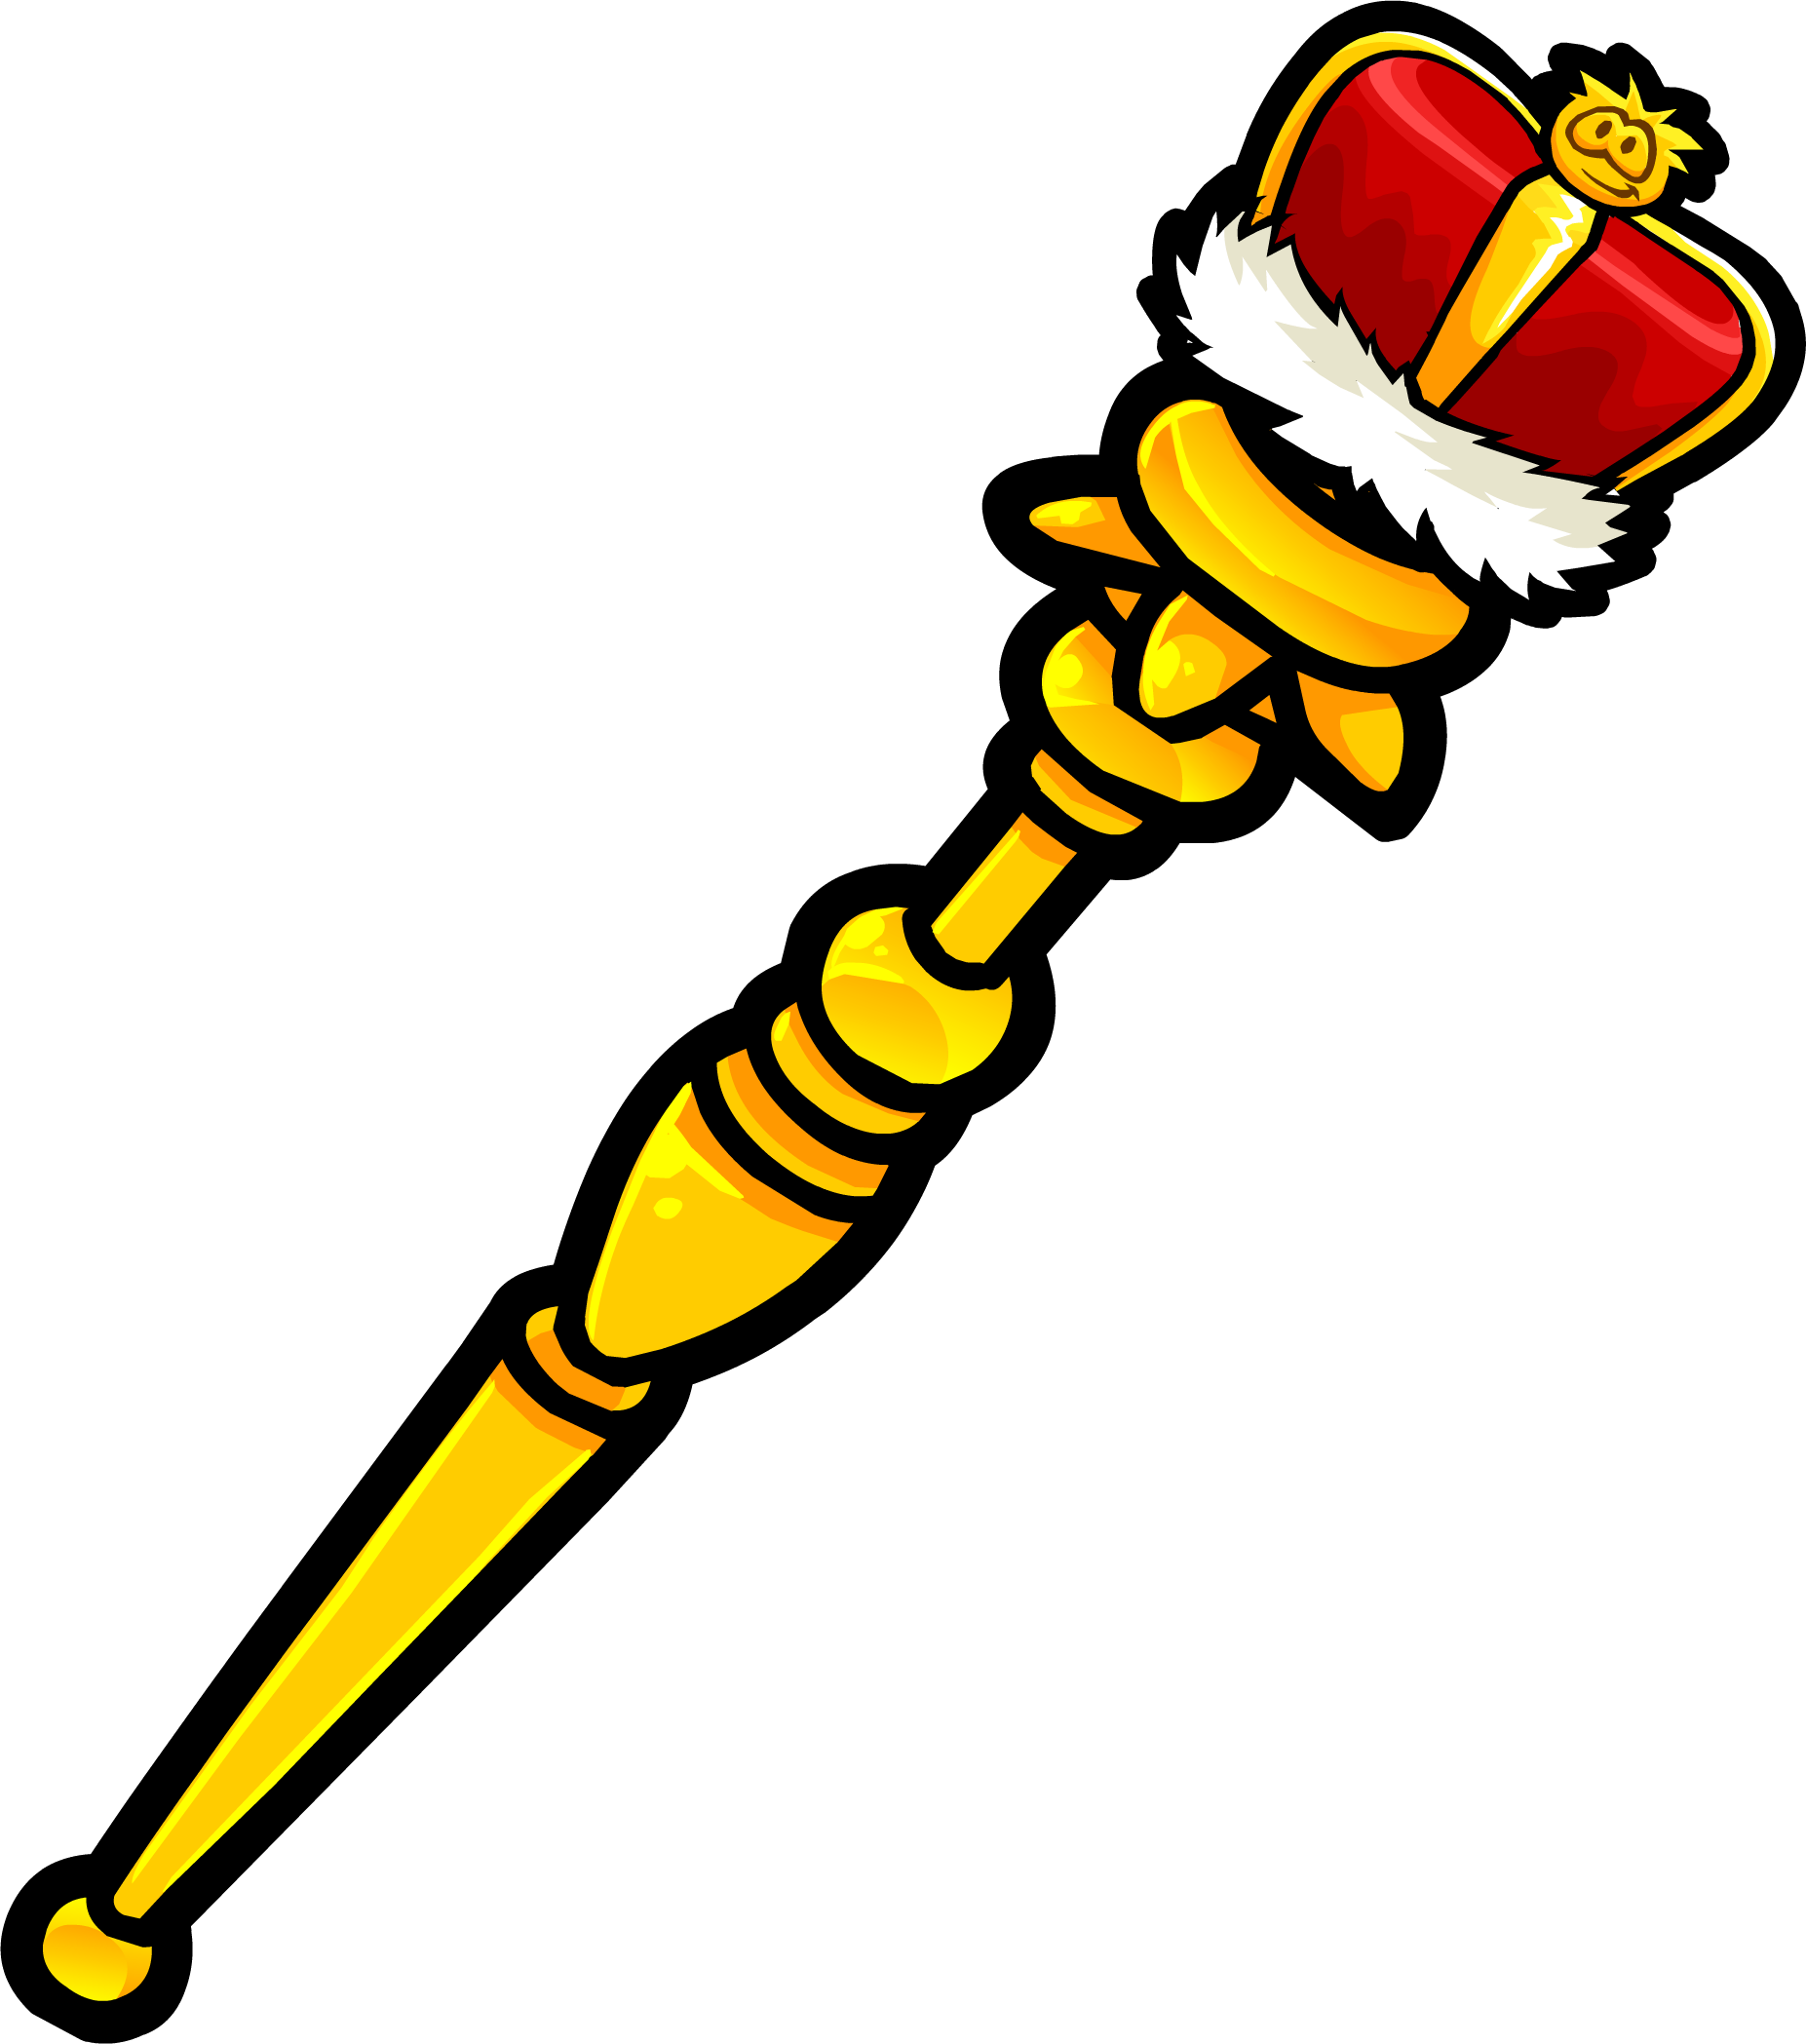 Royal blue king crown and sceptor clipart picture free download Royal blue king crown and sceptor clipart - ClipartFest picture free download